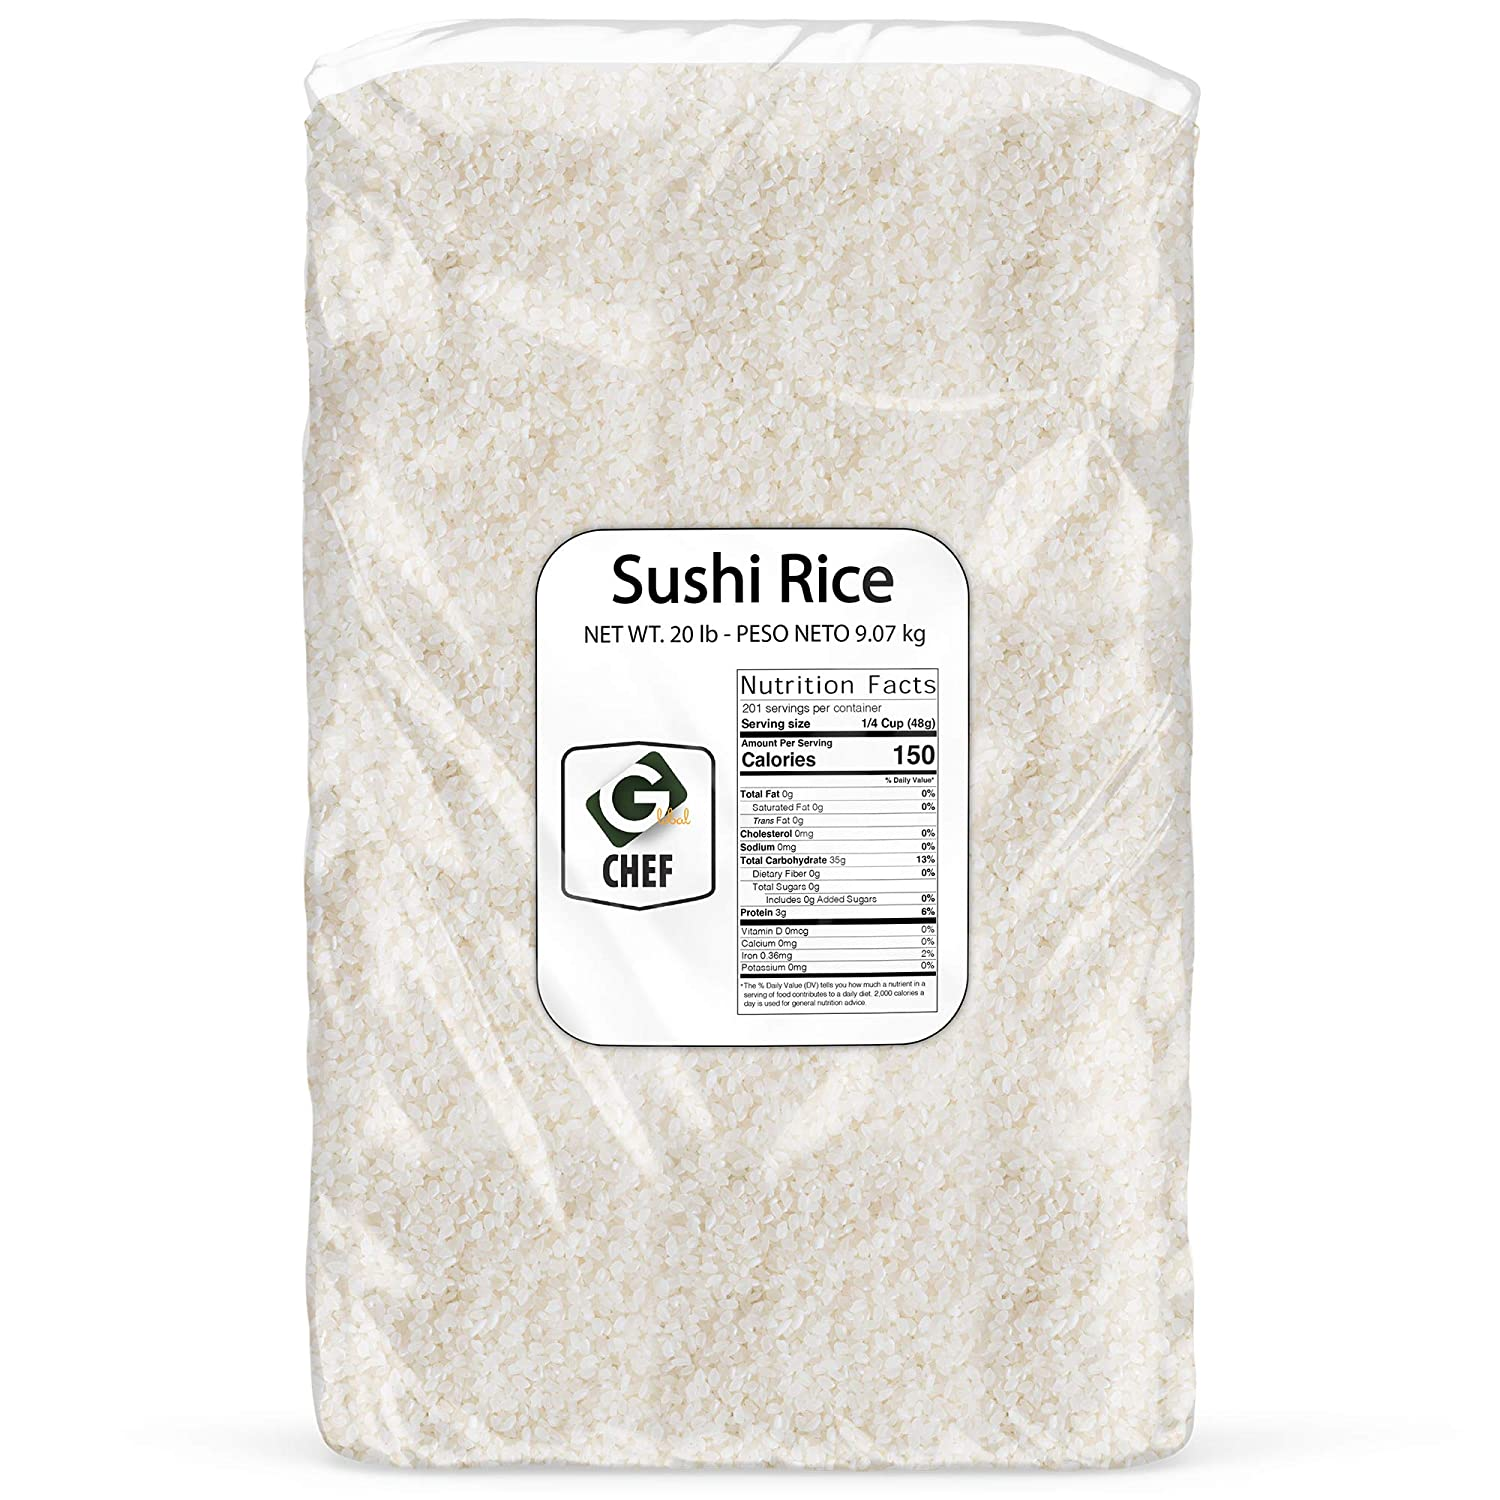 Global Chef - Sushi Short Rice - 20 LBS Bulk Bag